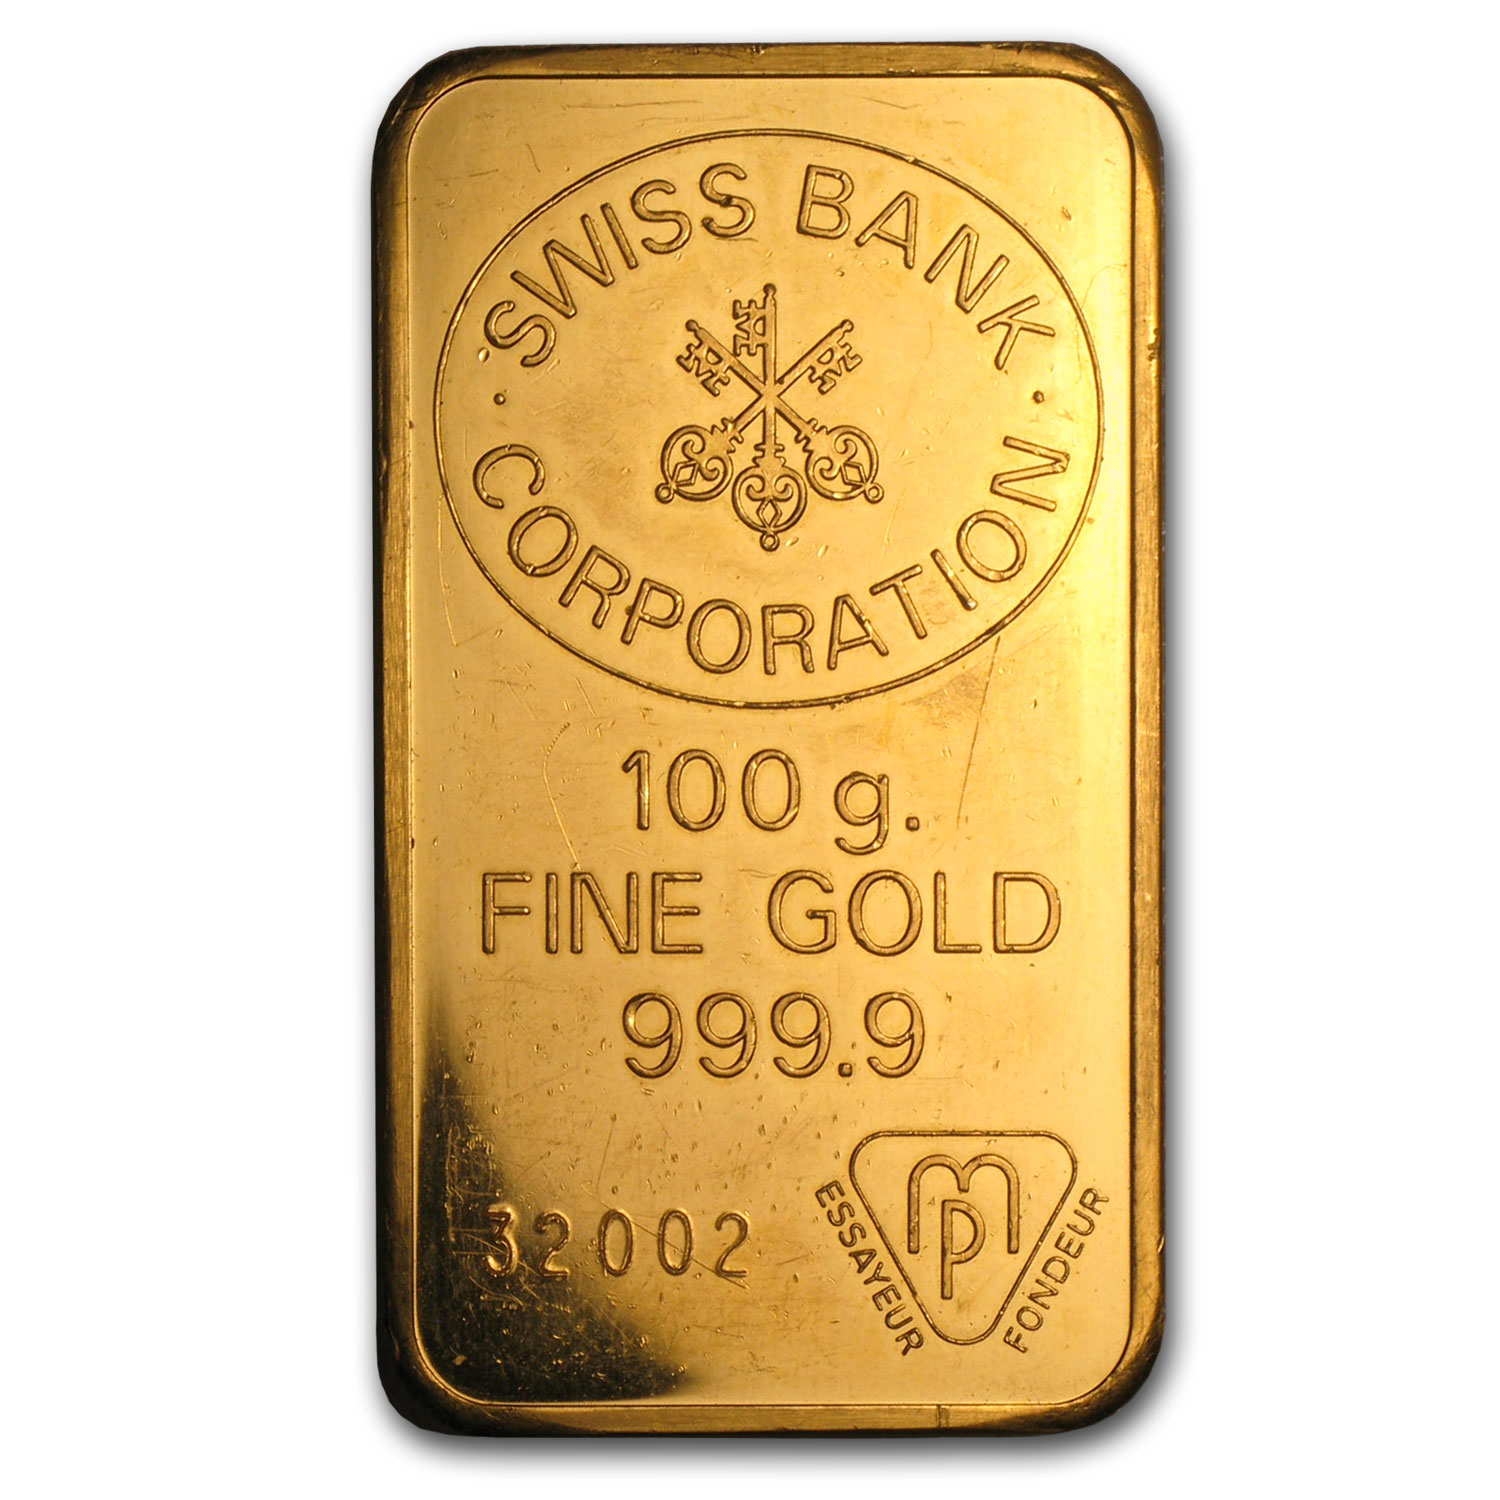 100 gram Gold Bar - Swiss Bank Corporation